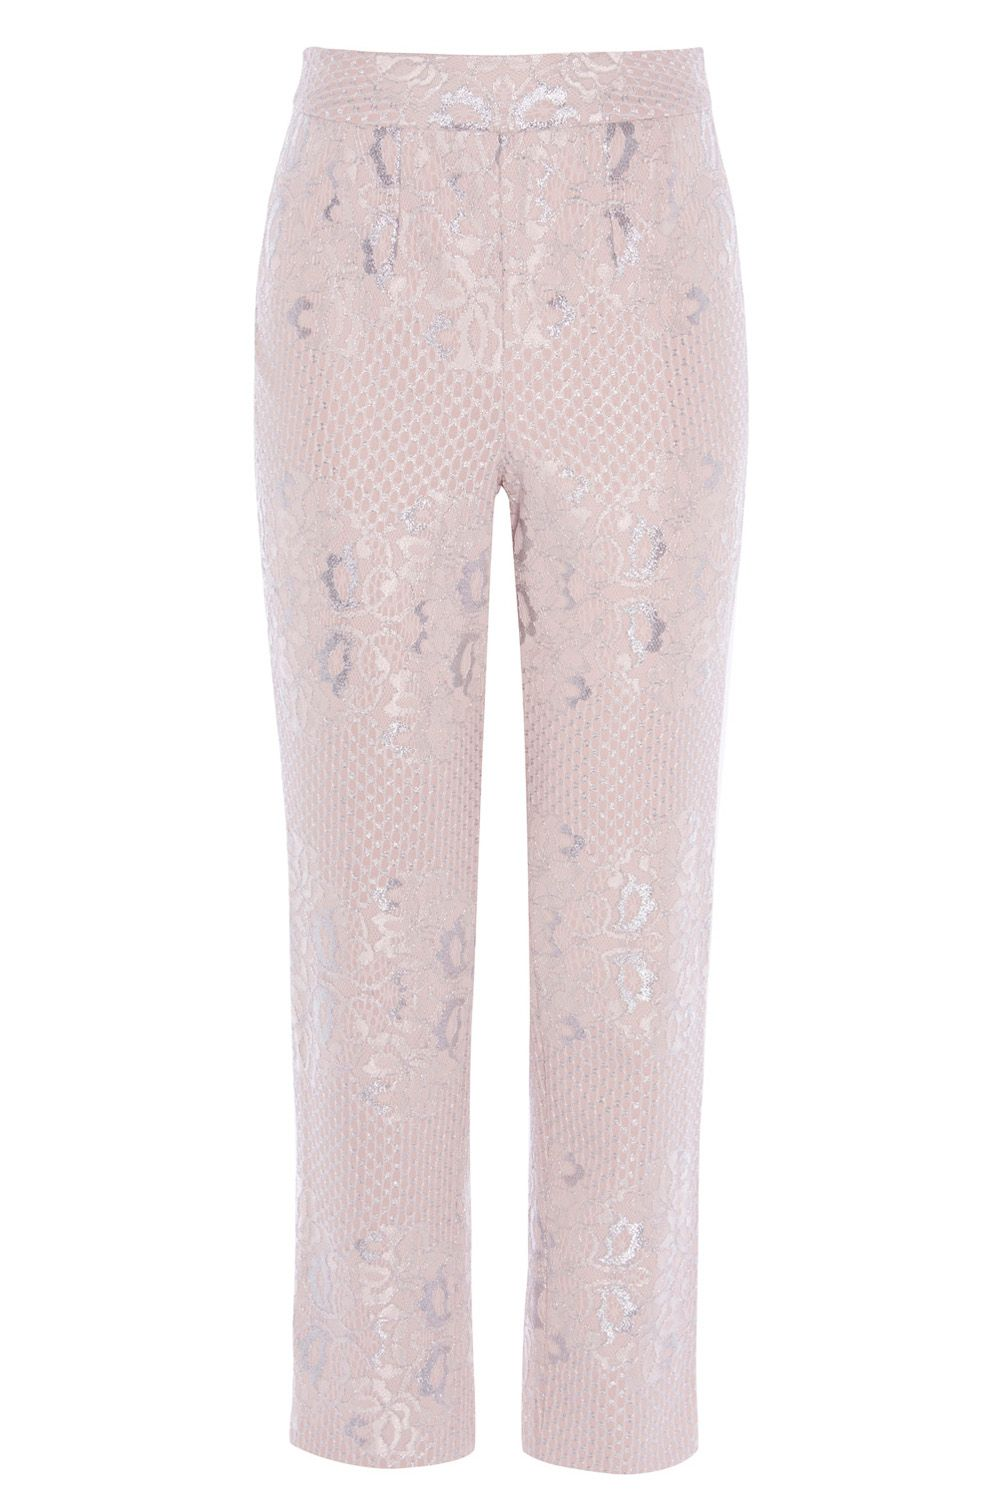 Coast Izzy Lace Trouser, Pink